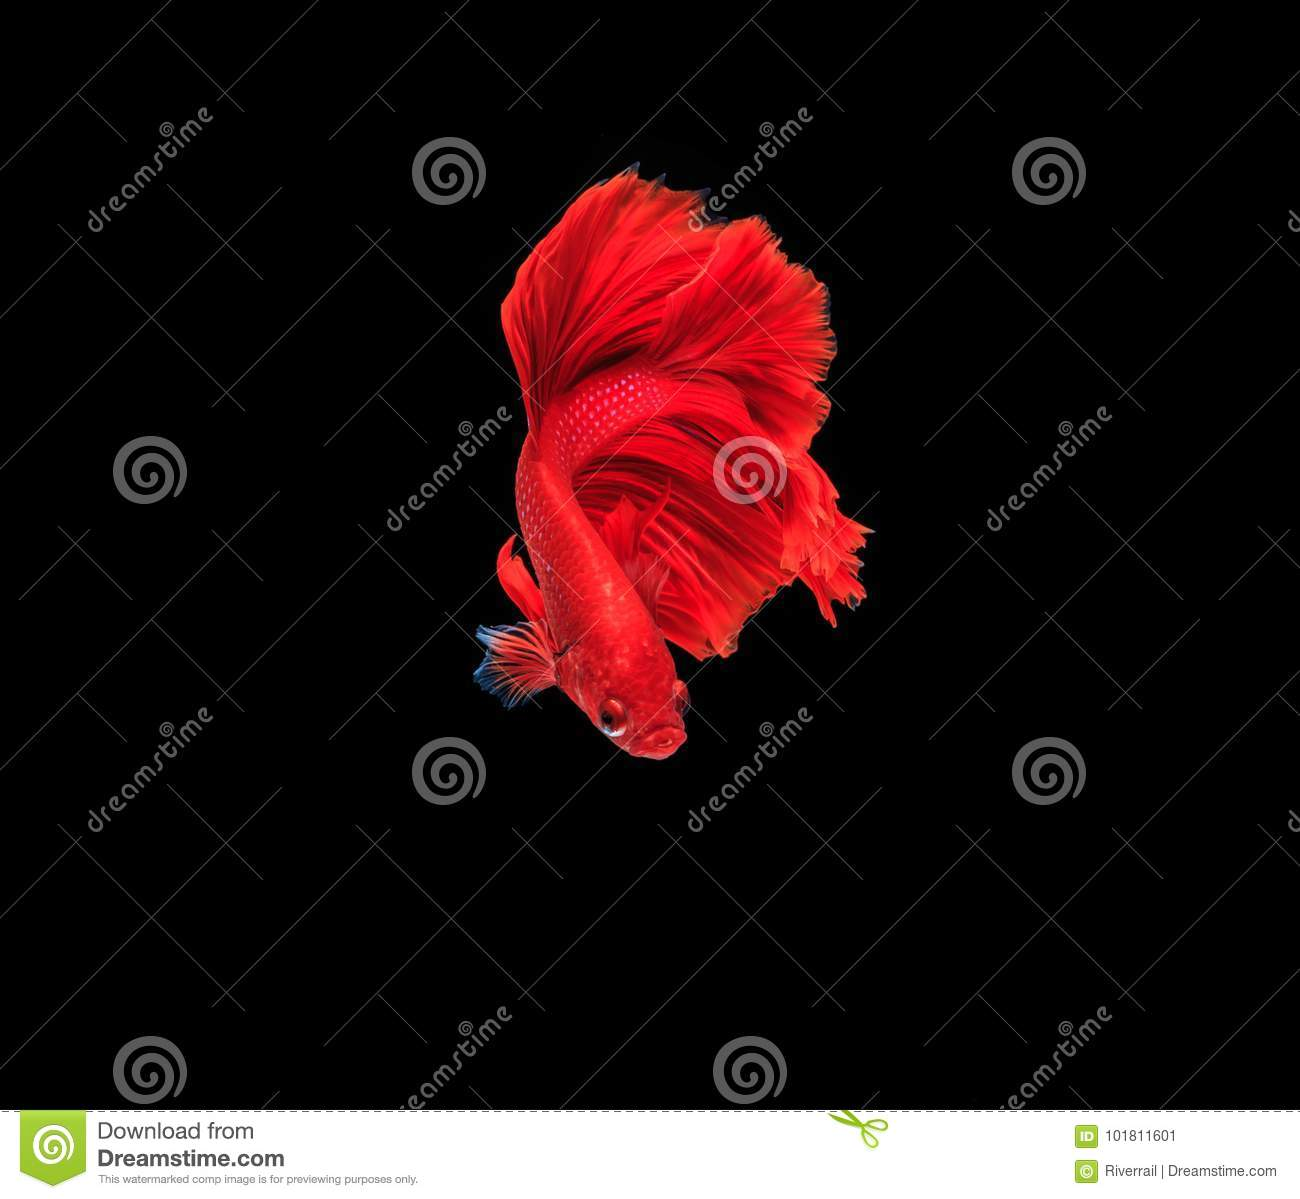 Red Fighting Fish In The Water Stock Image - Image of fighting ...